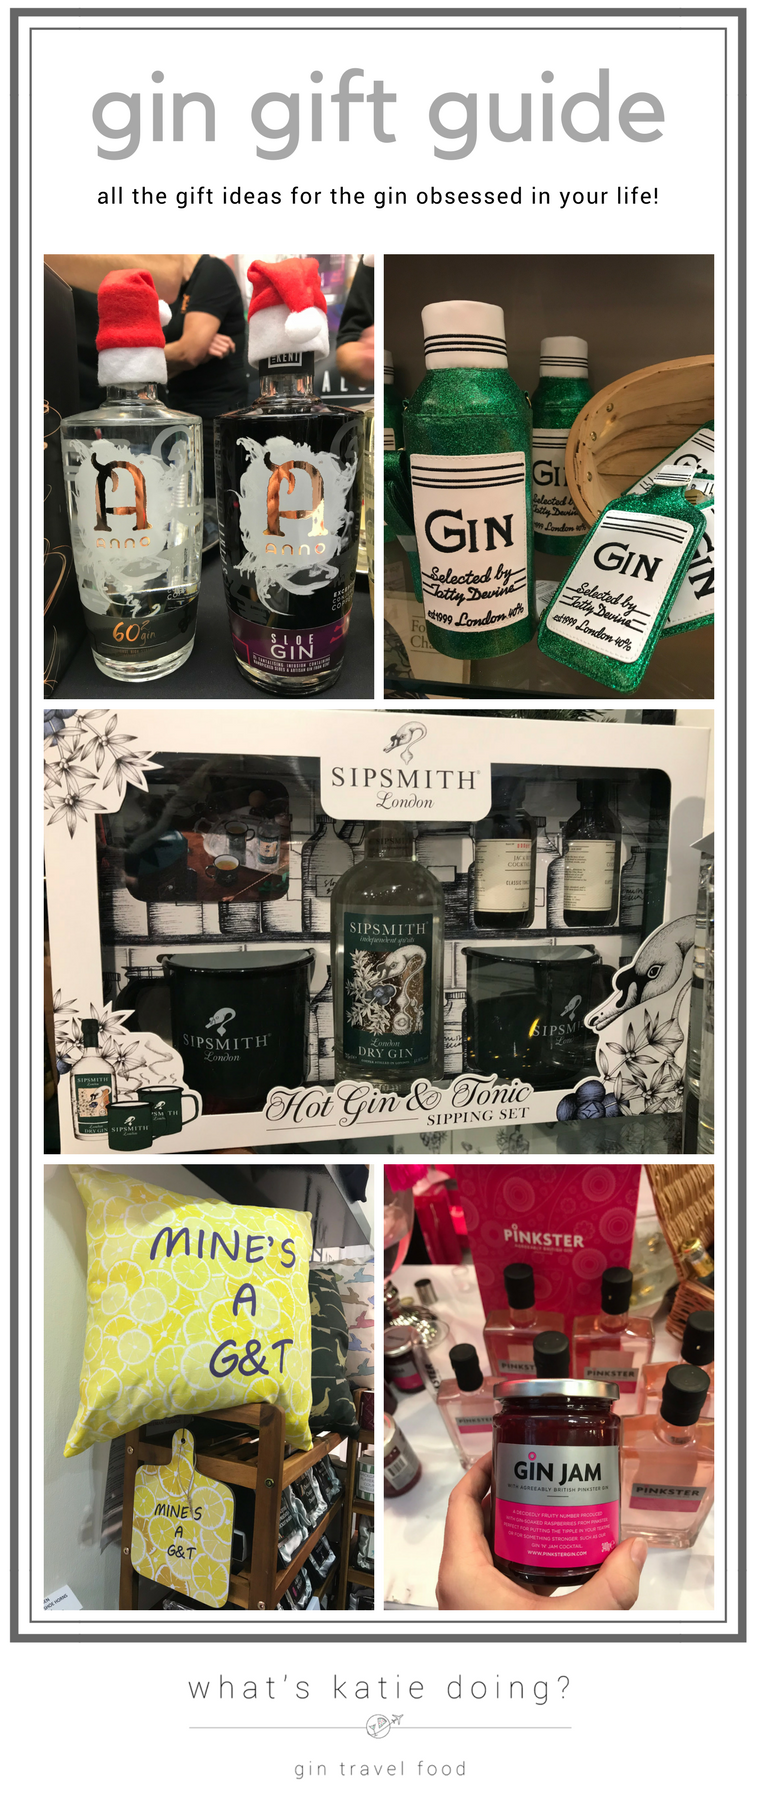 gin gift guide on What's Katie Doing? blog - everything you need for the gin obsessed in your life!